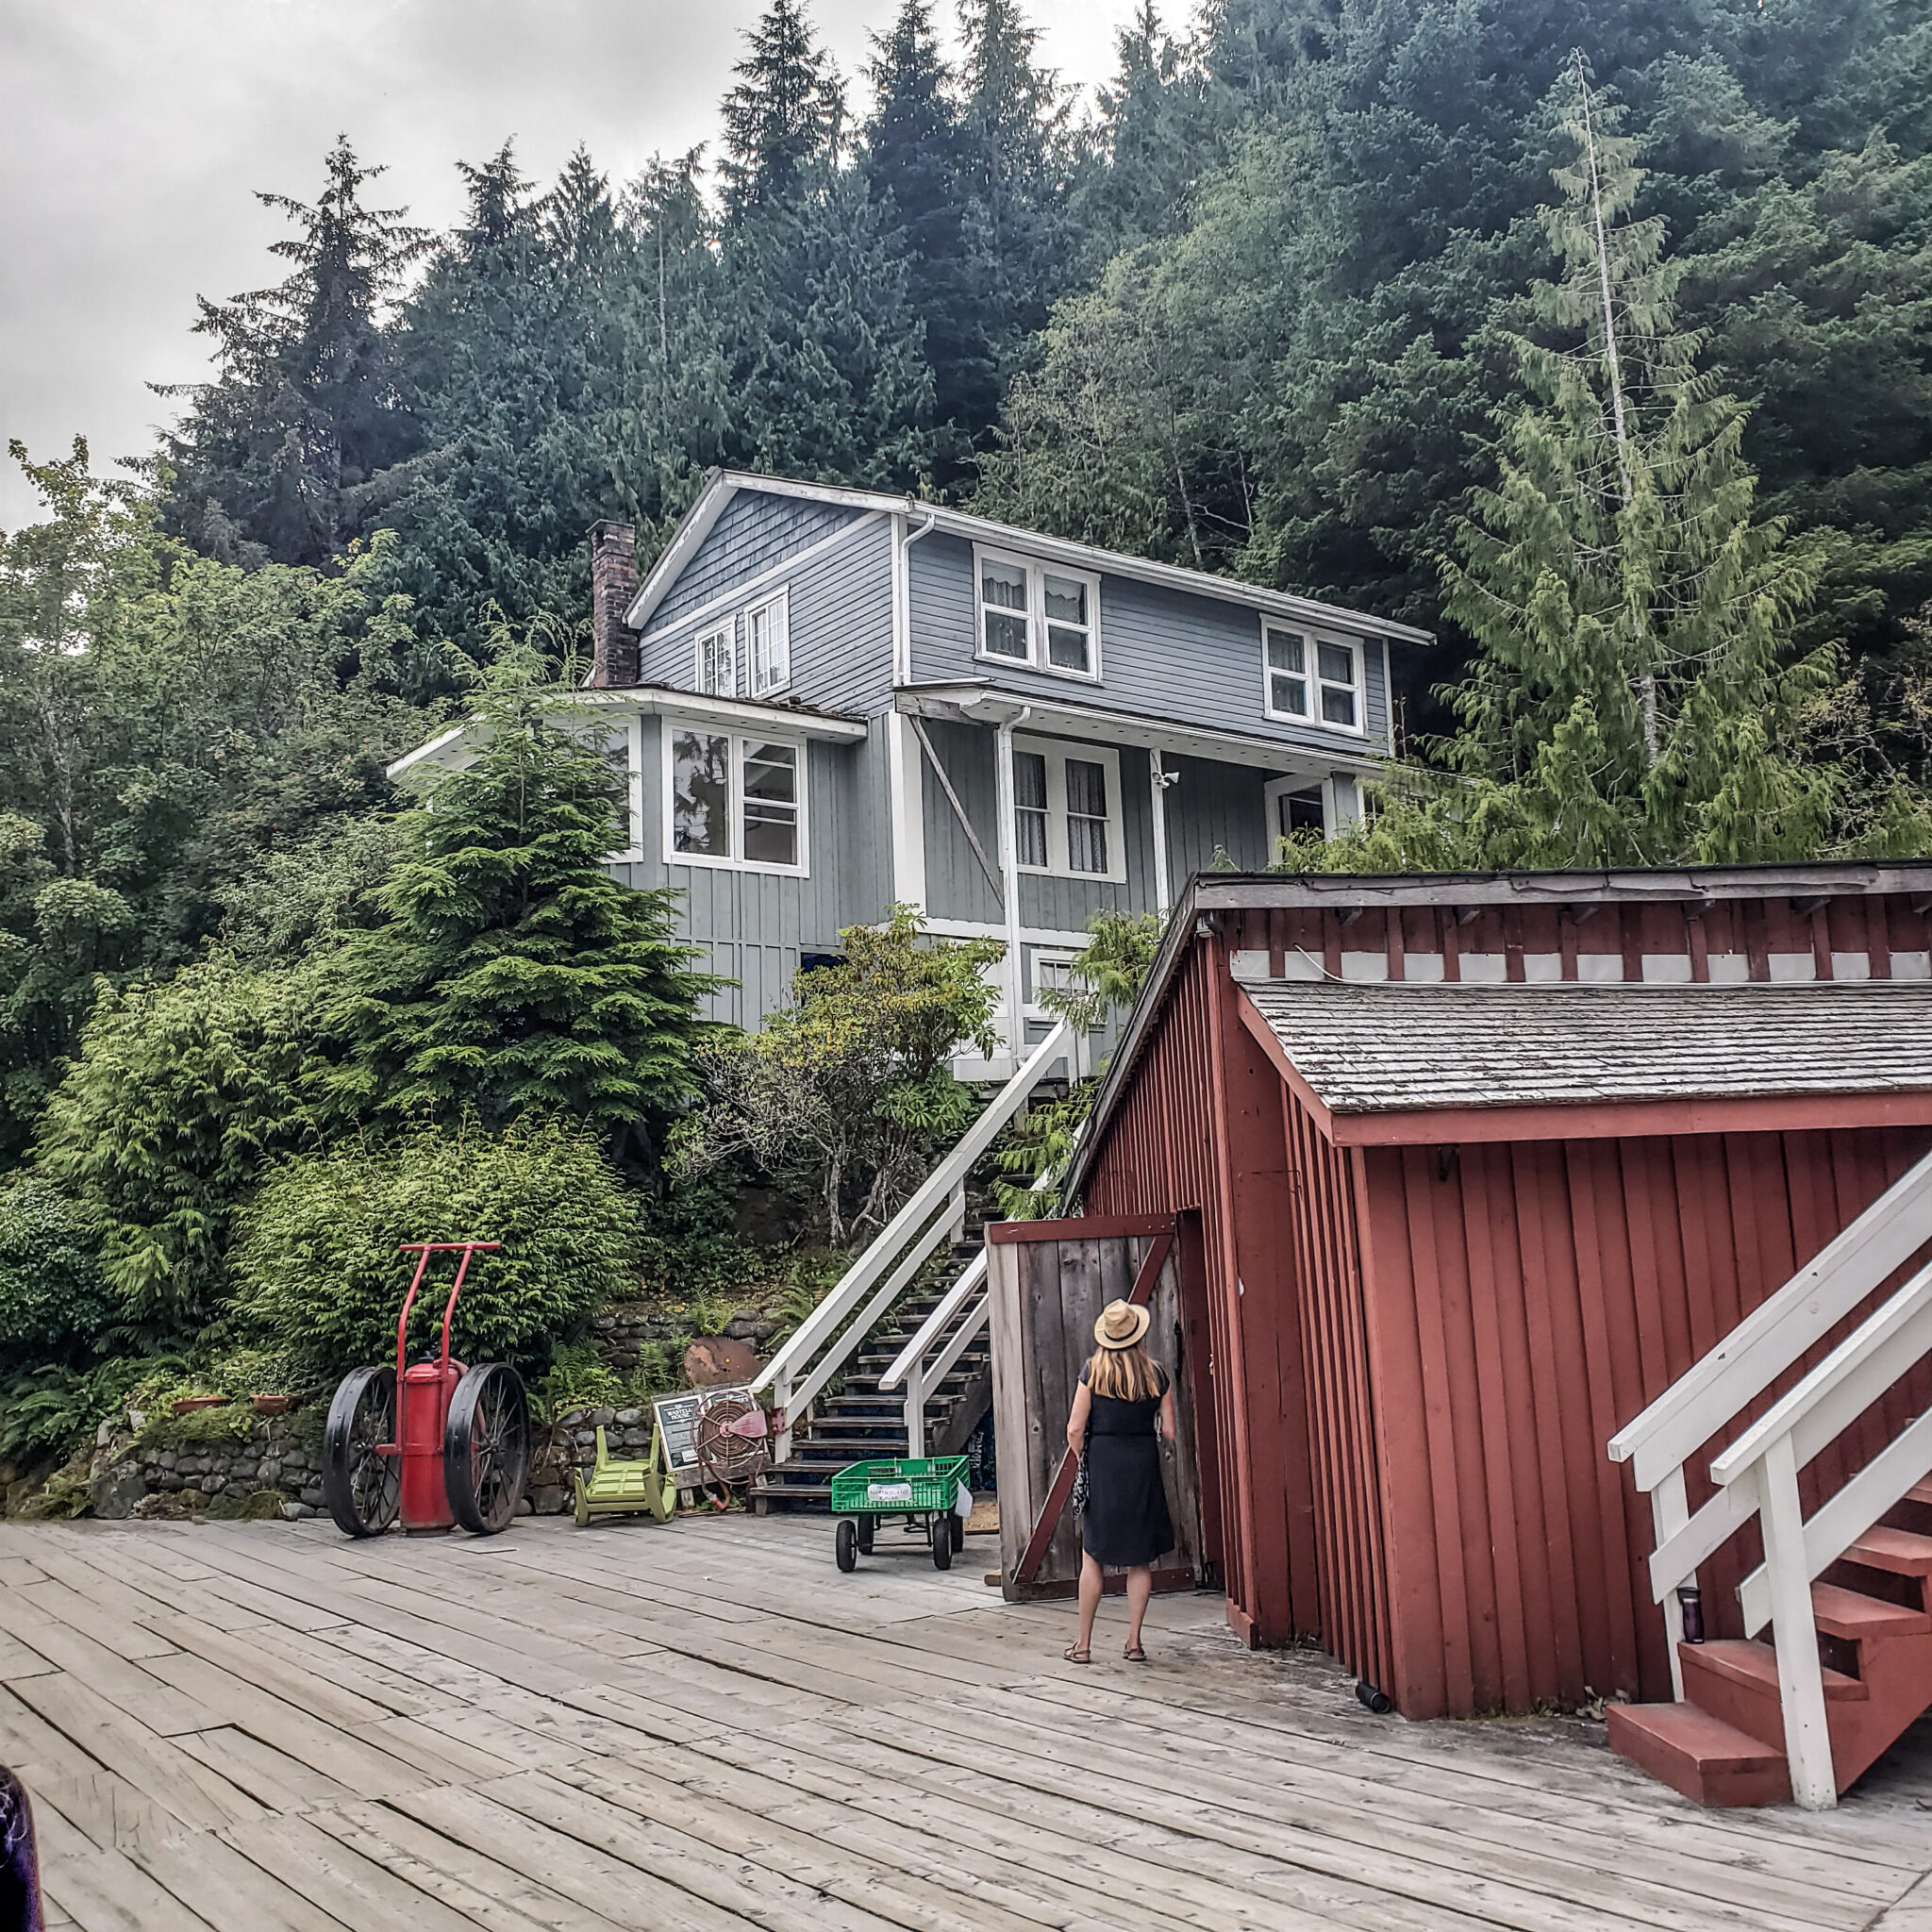 Visit Port Hardy - Vancouver Island North - Explore Canada - Hello British Columbia - Telegraph Cove - Houses